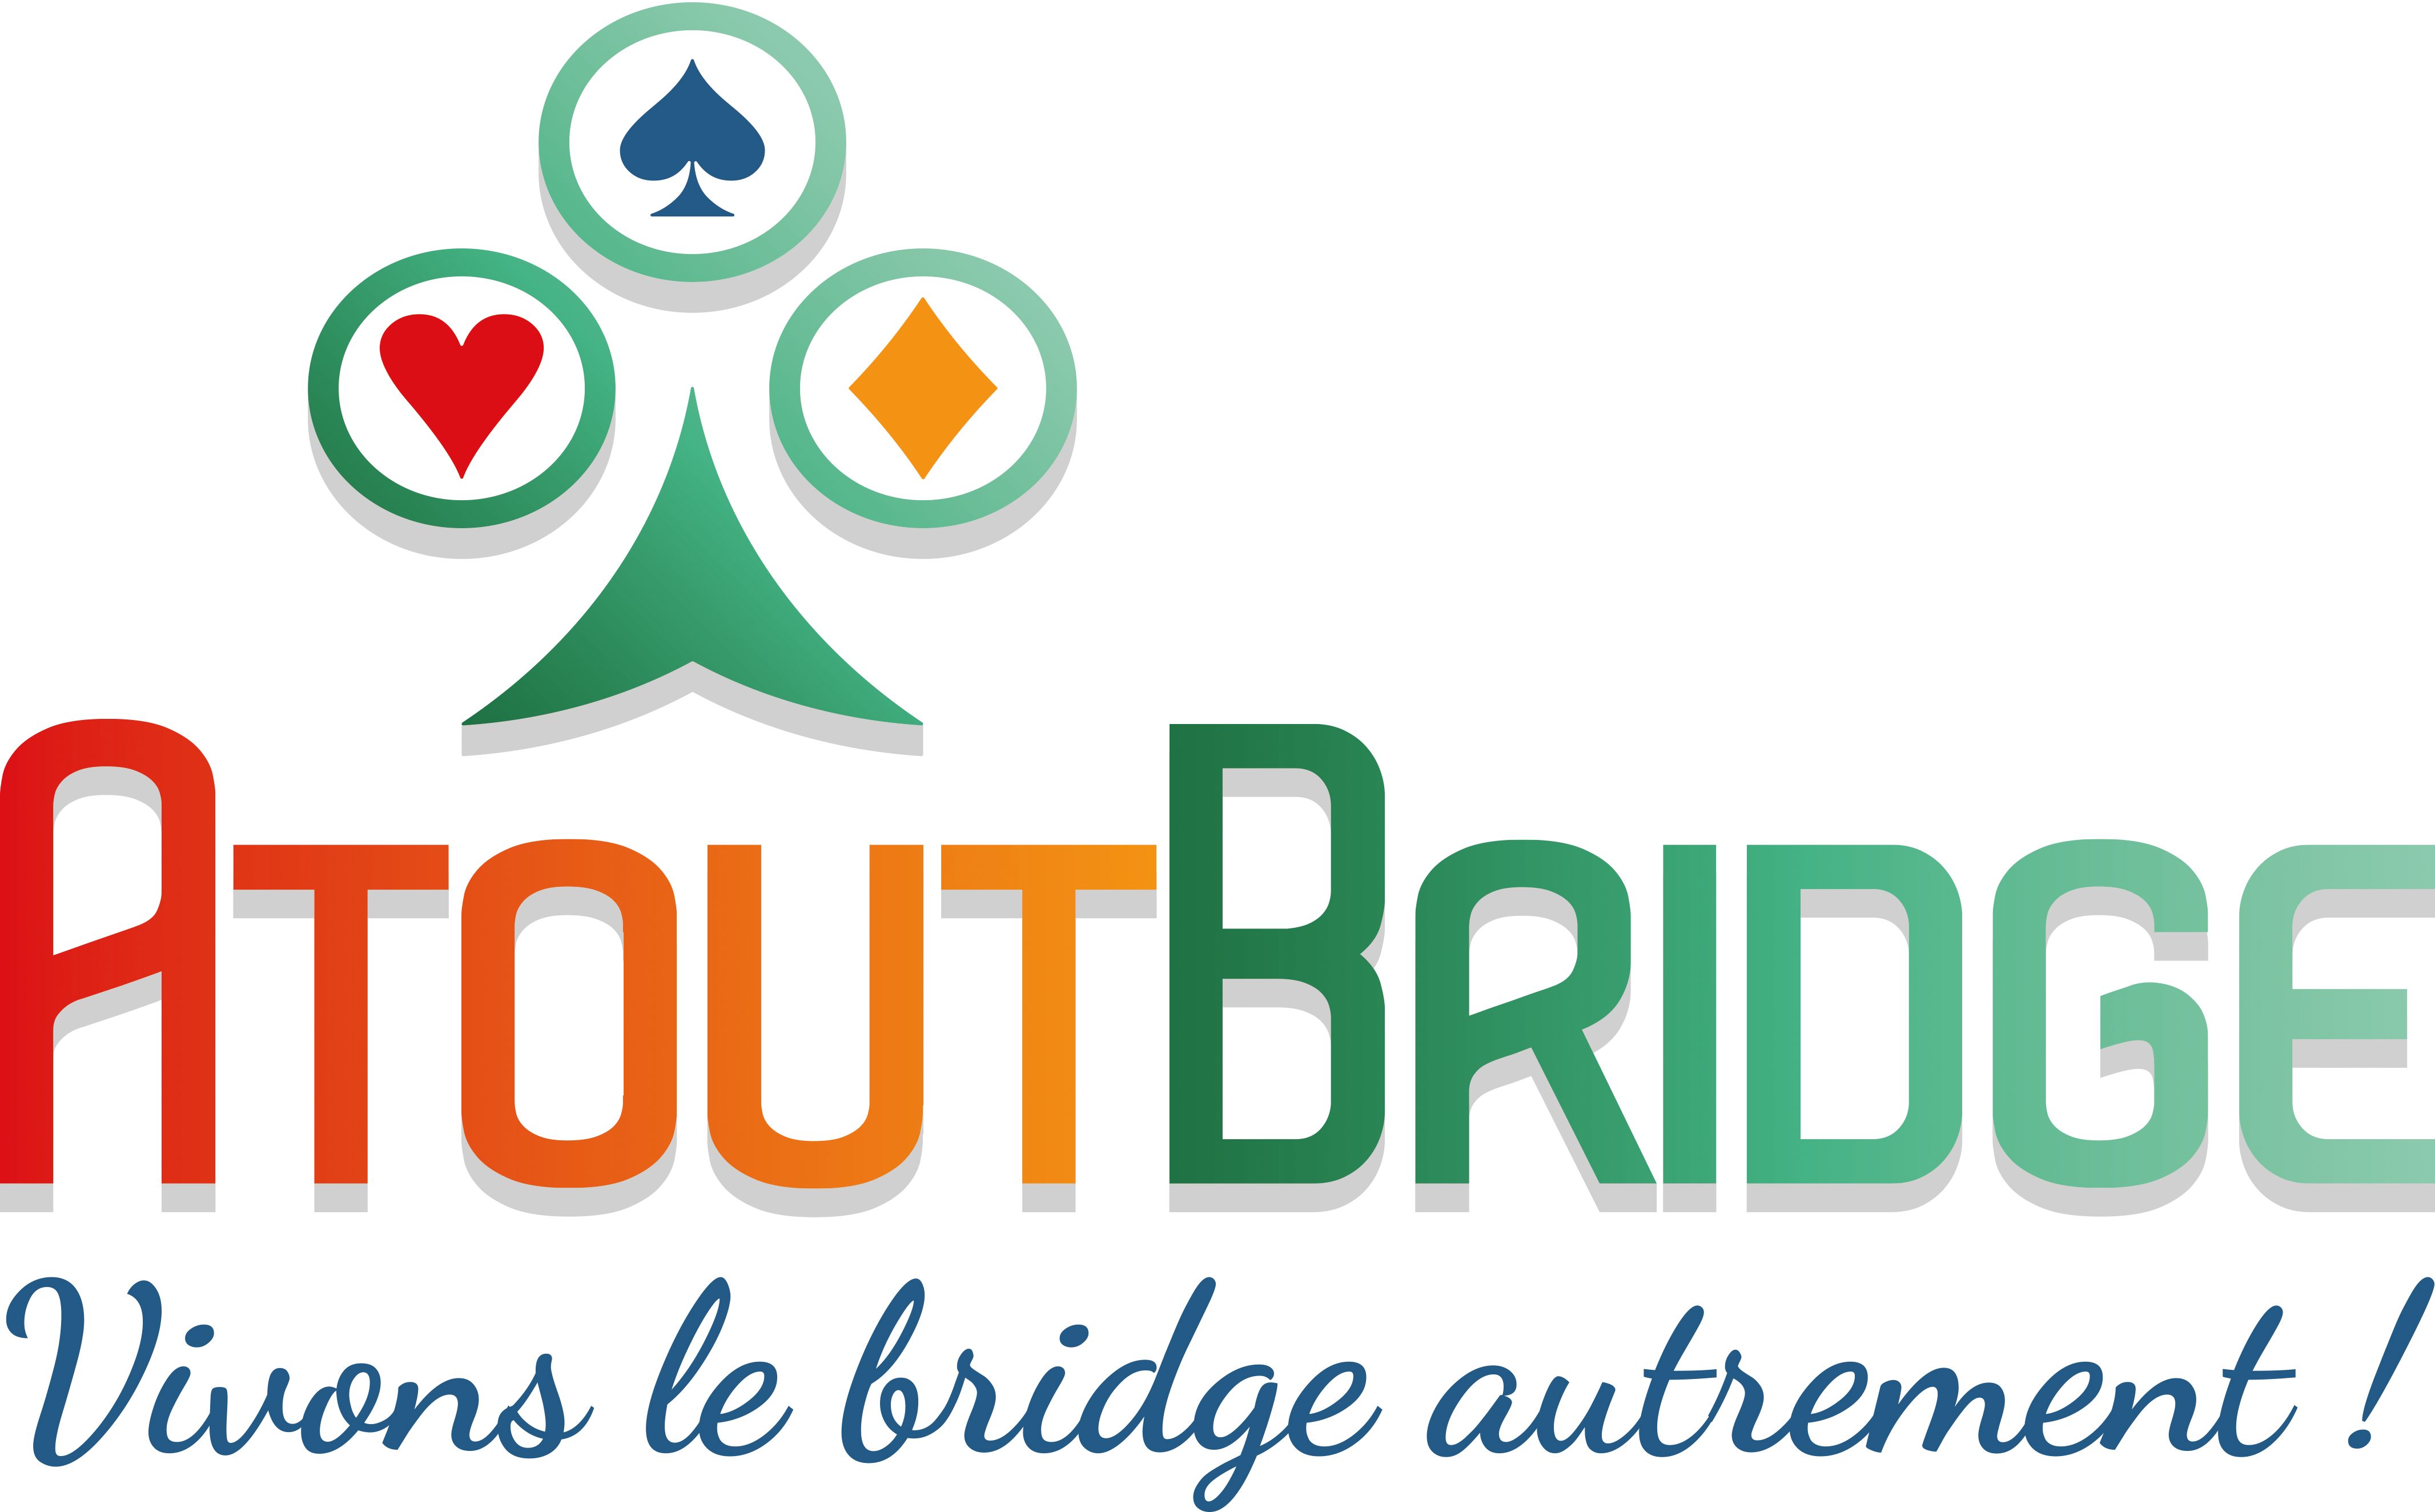 logo atoutbridge v1 copy